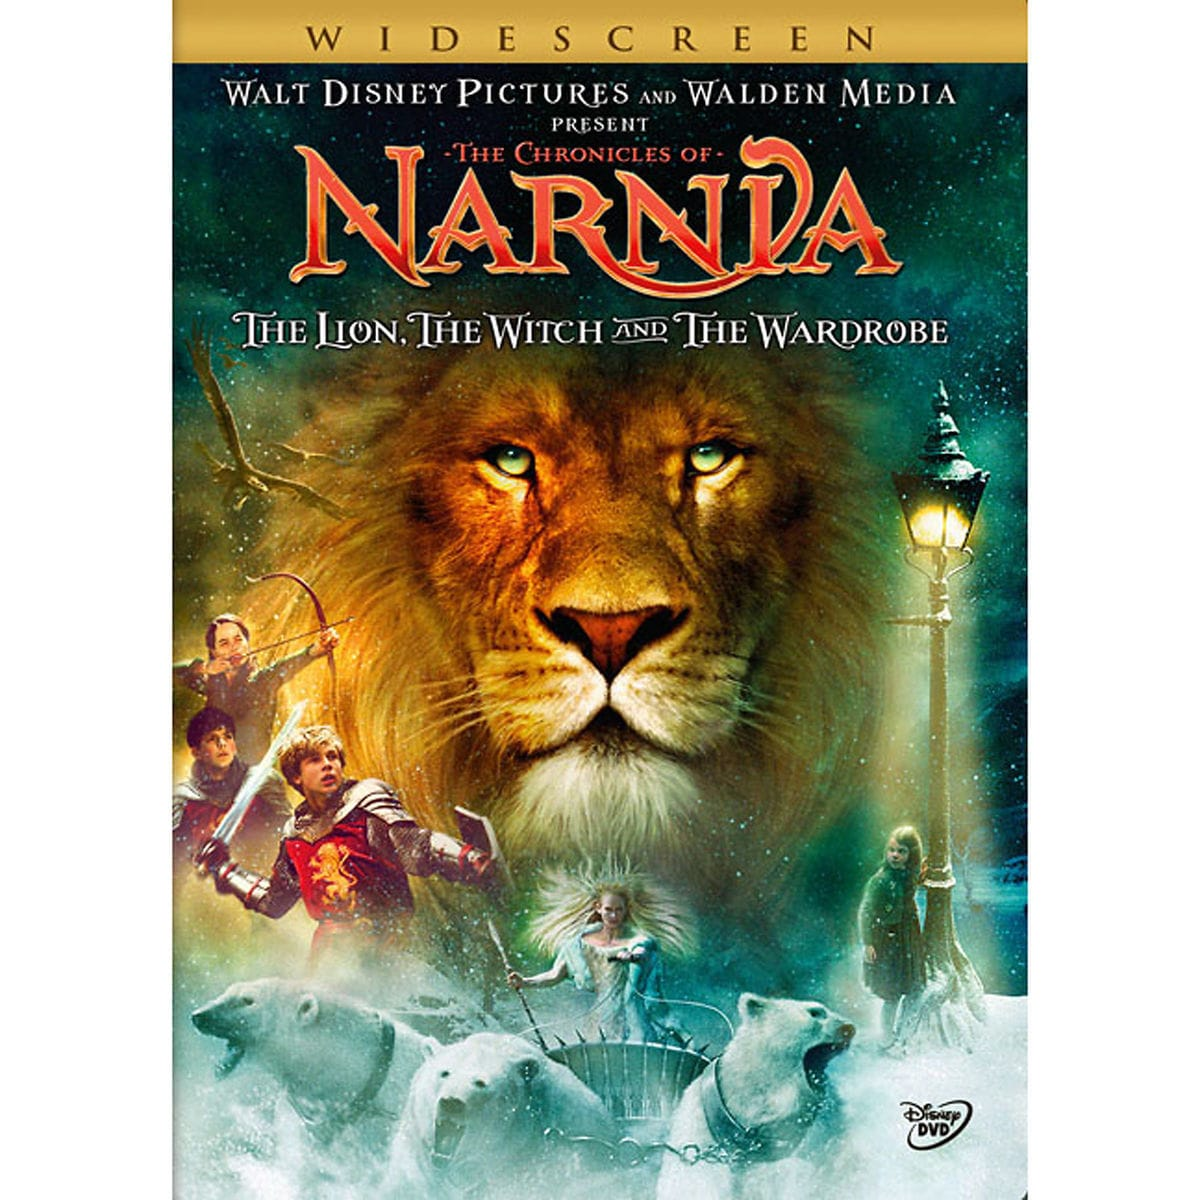 the chronicles of narnia: the lion, the witch and the wardrobe dvd